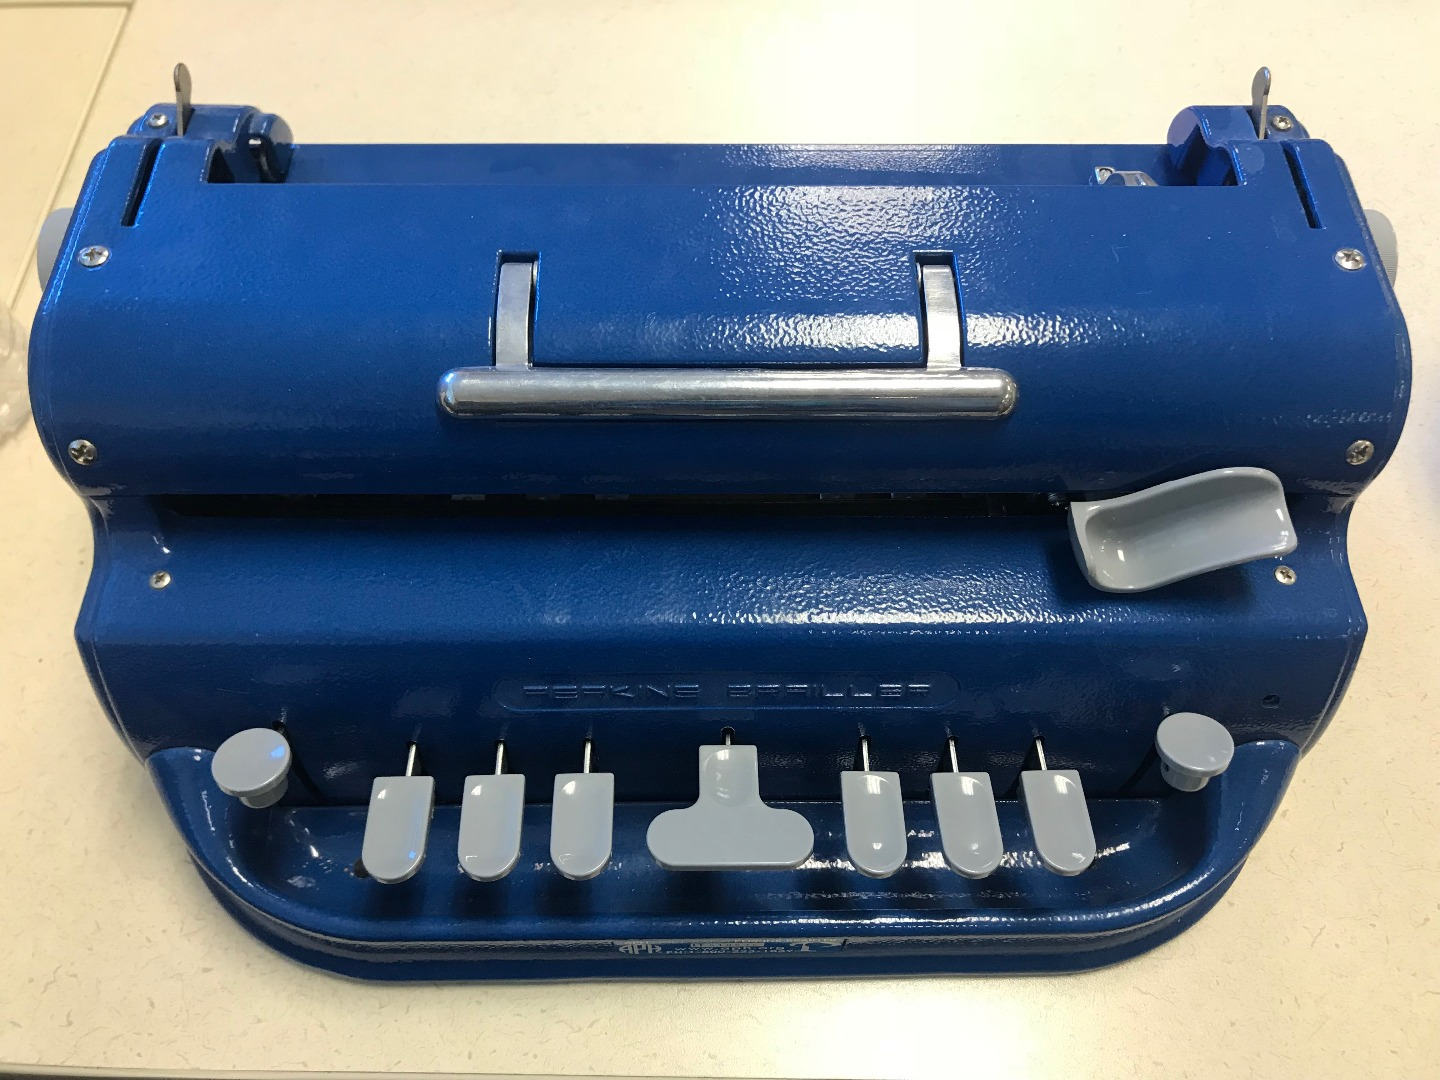 brail type writer